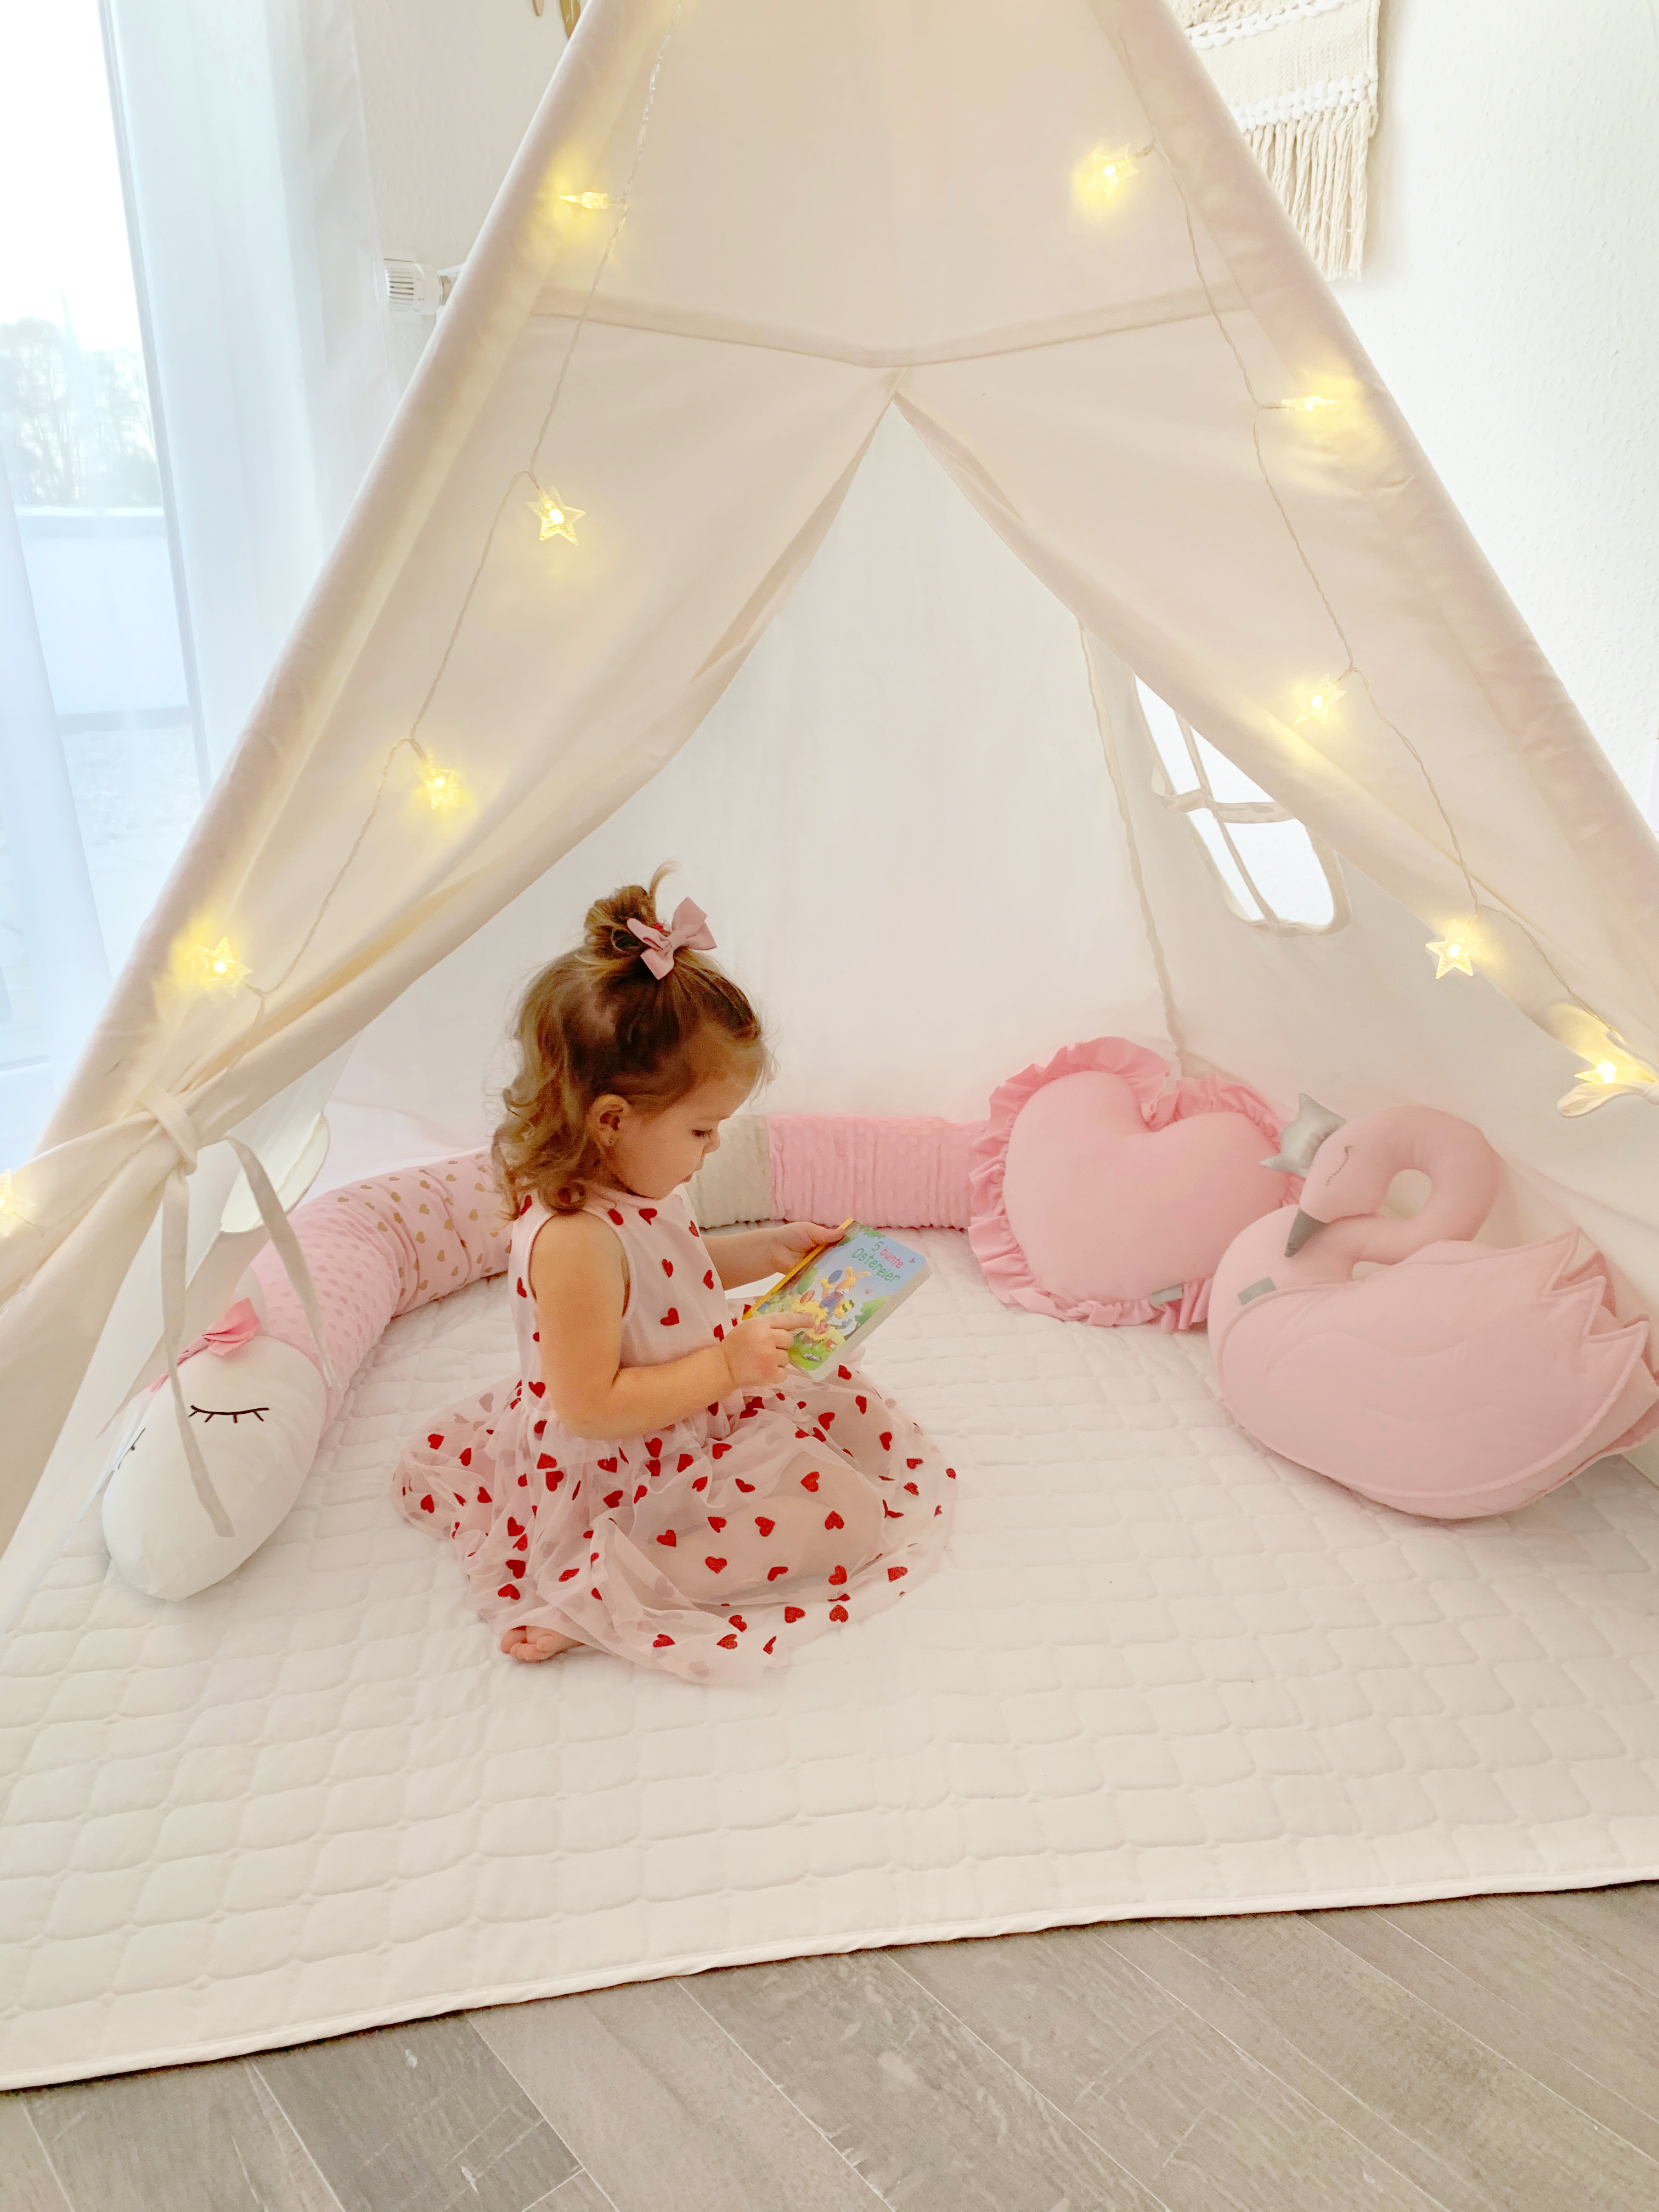 163cm Teepee Tent For Kids Playhouse With Floor Mat & Carry Case ForChildren Indoor Outdoor- White Cotton Canvas Tipi